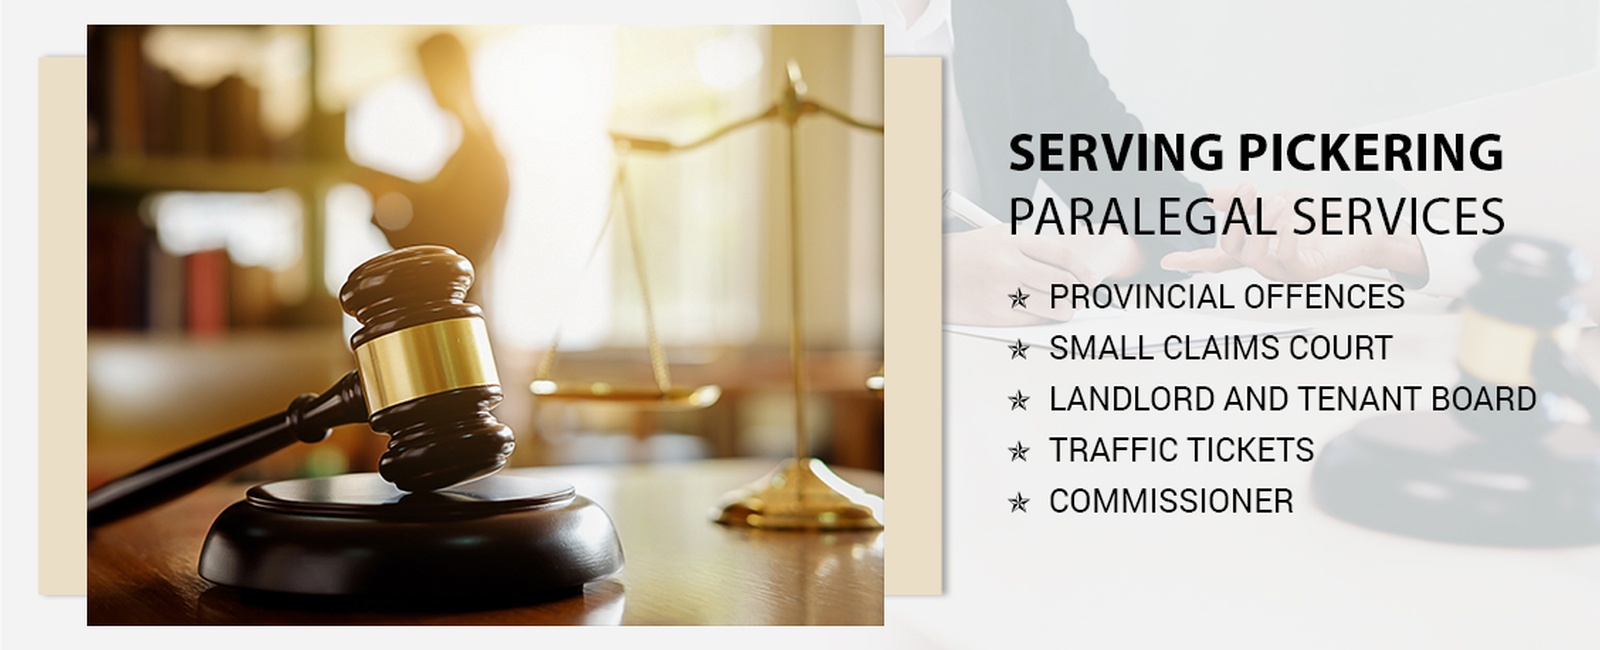 Paralegal services in Pickering